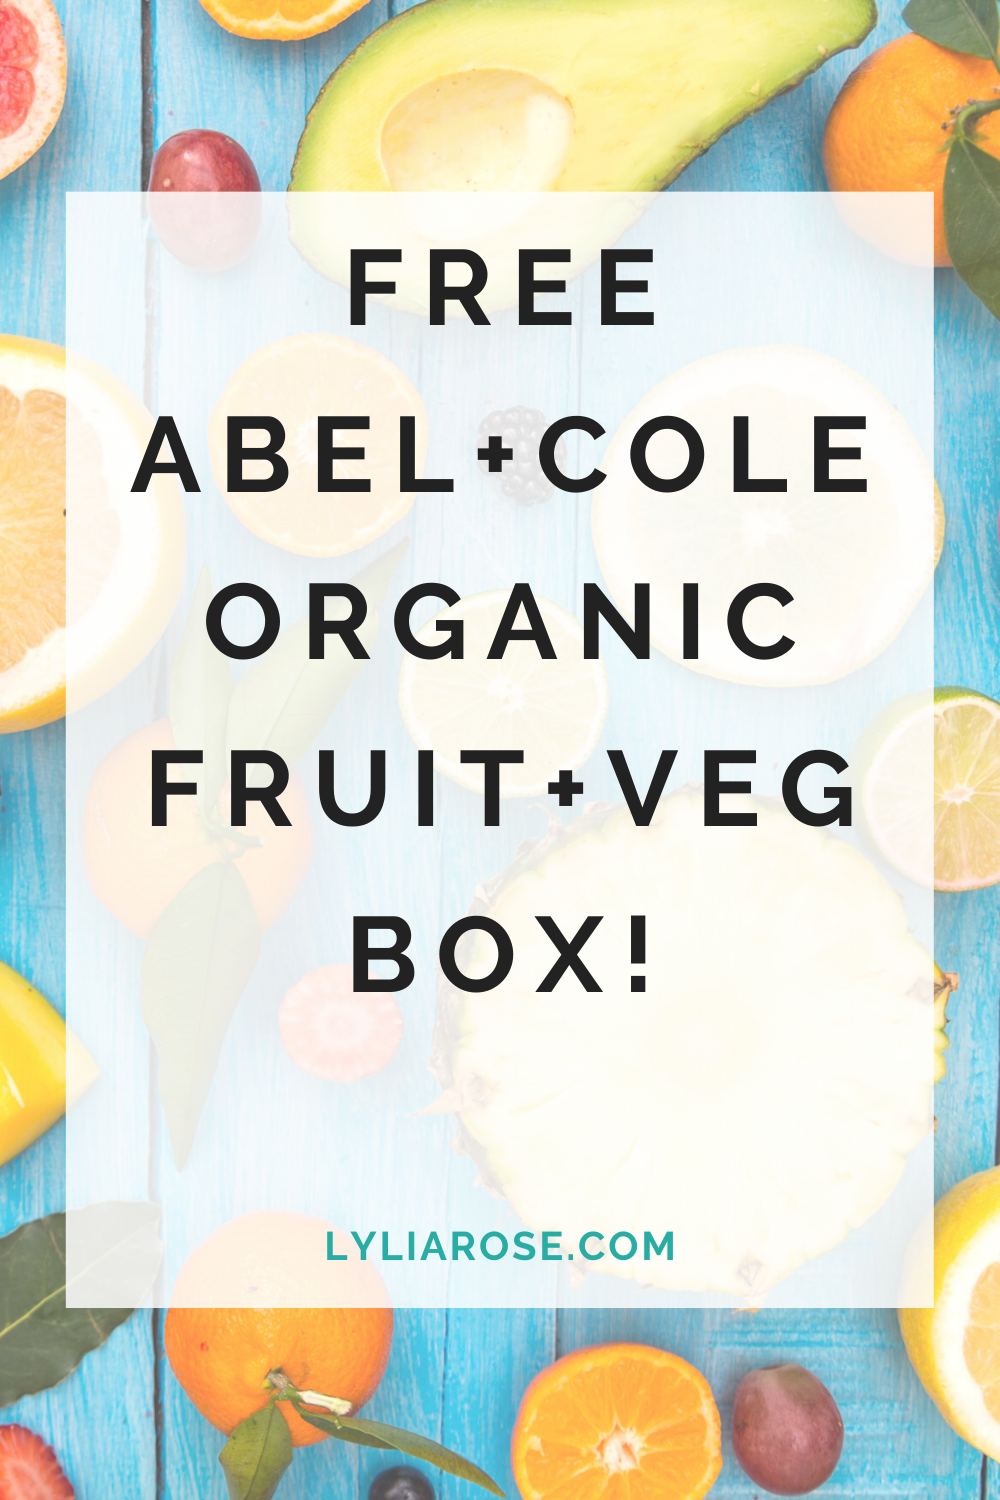 Free Abel+Cole Organic FRUIT+Veg Box! (1)